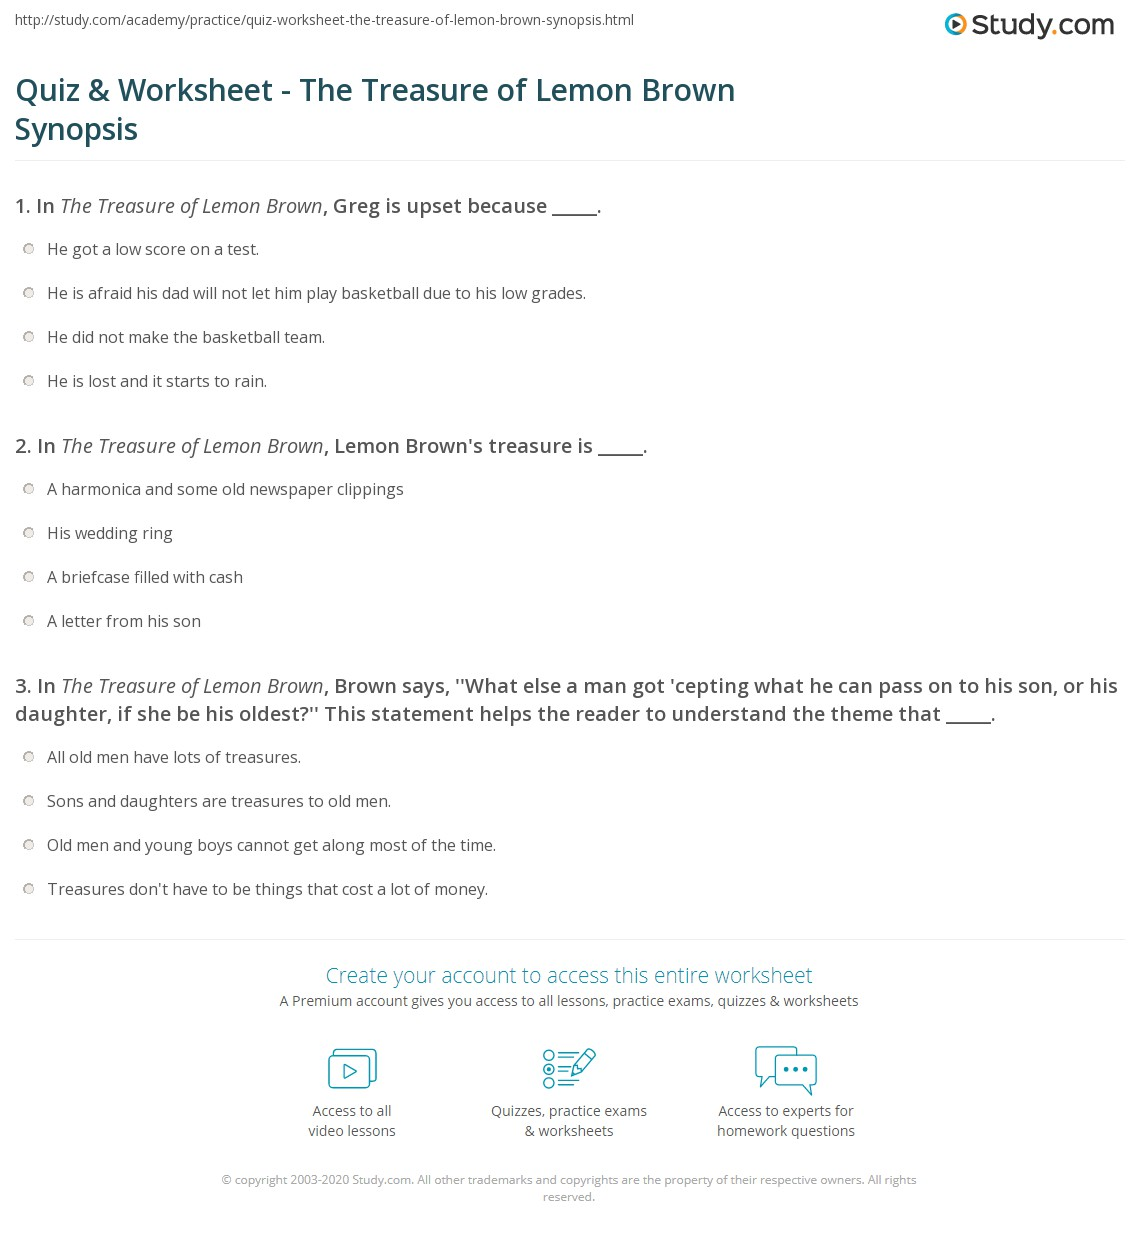 Quiz & Worksheet - The Treasure of Lemon Brown Synopsis | Study.com